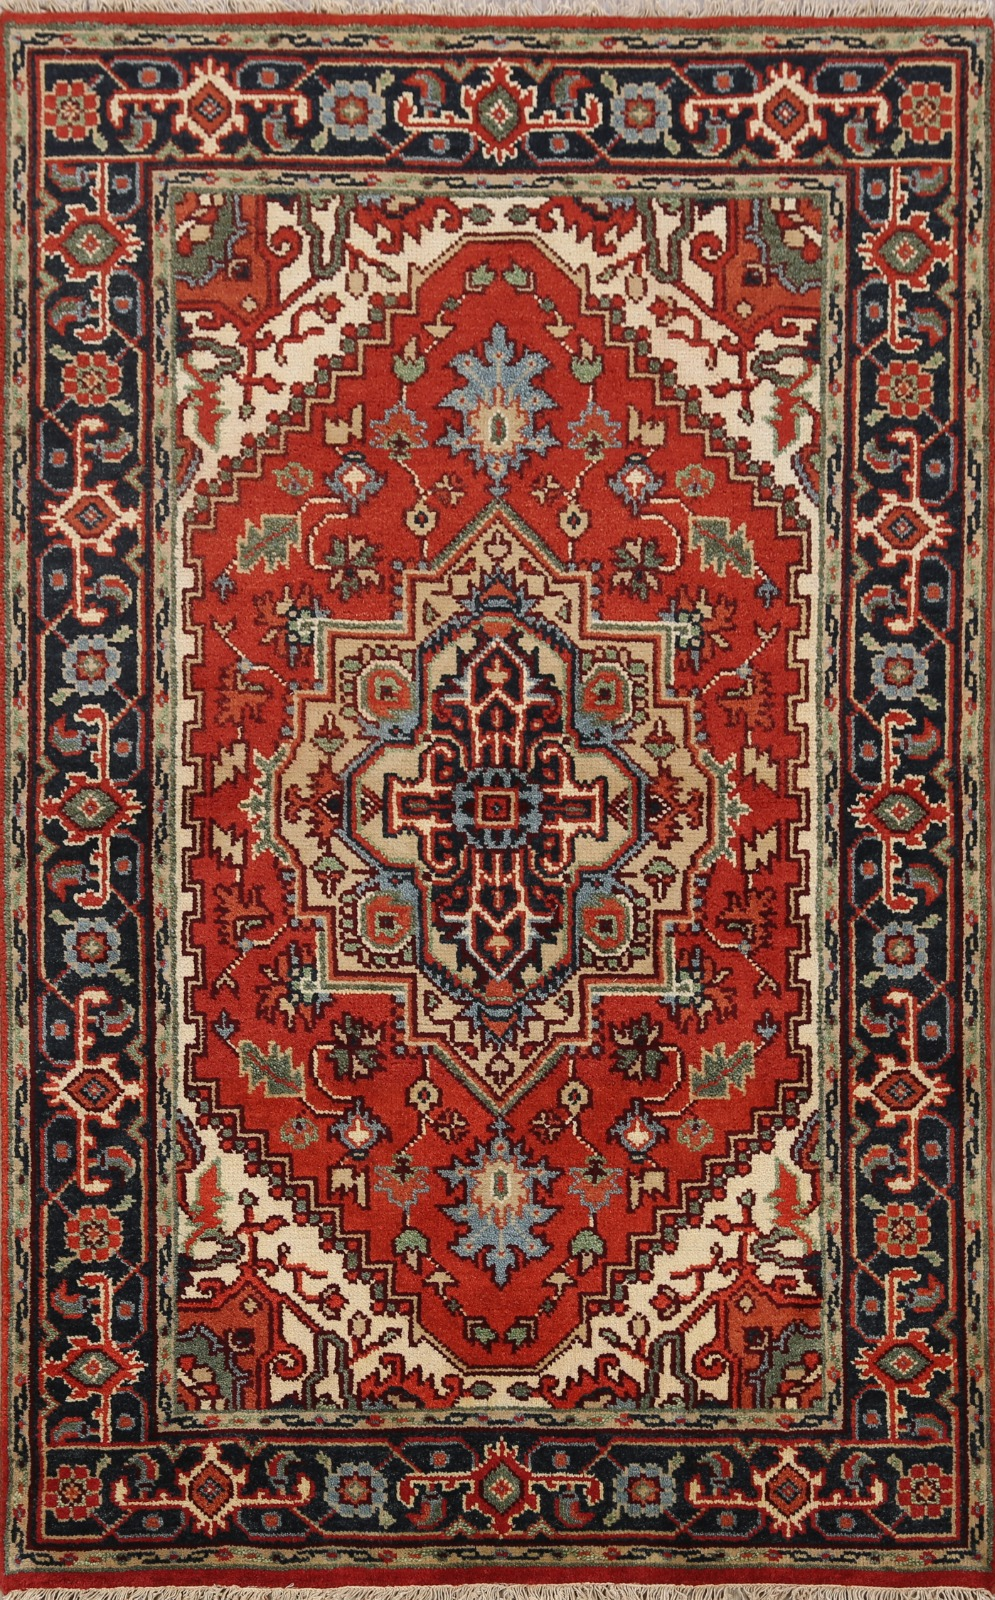 Geometric Rust Red Navy Blue Hand Knotted Wool Heriz Oriental Area Rug 4x6 Ft Ebay